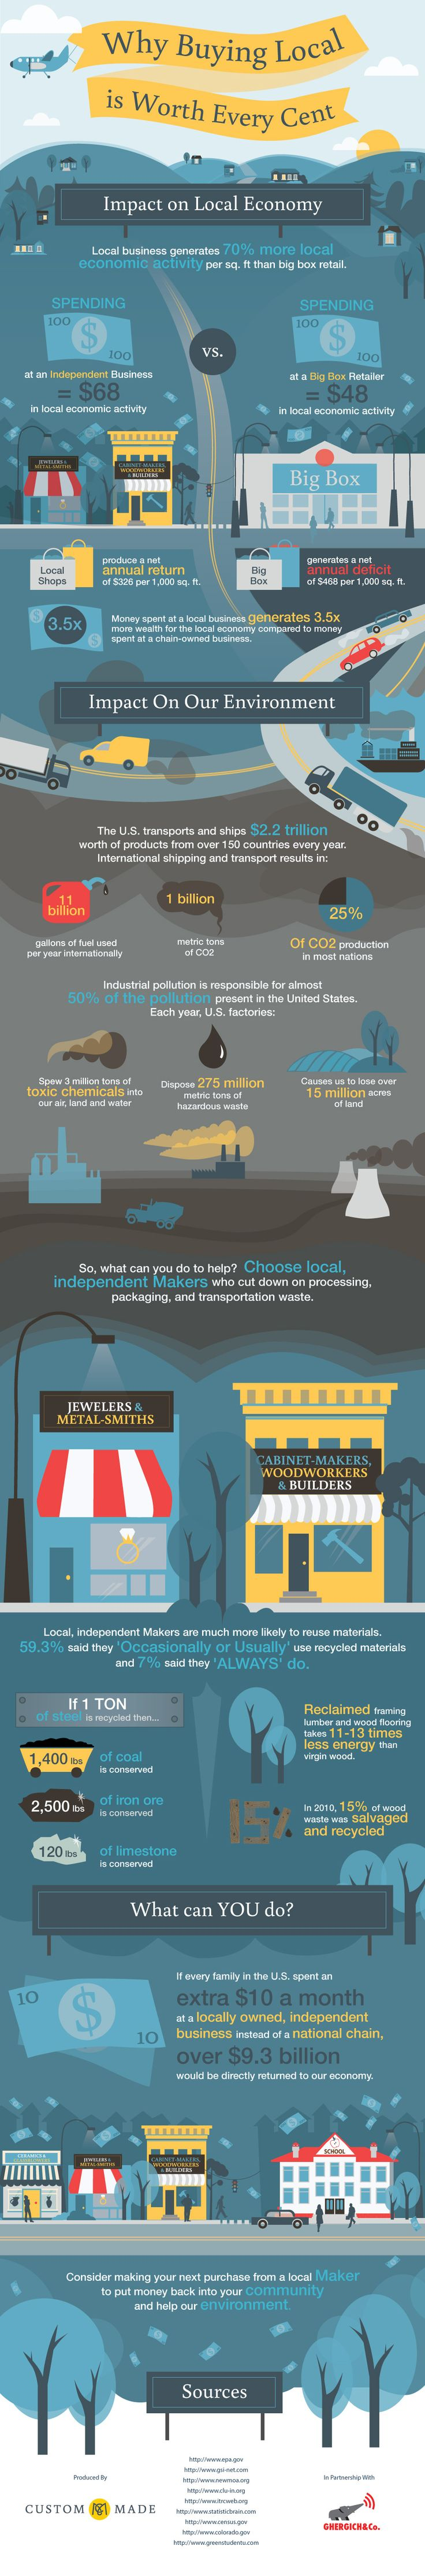 Why Buying Local Is Worth Every Cent #infographic #shoplocalsaturday